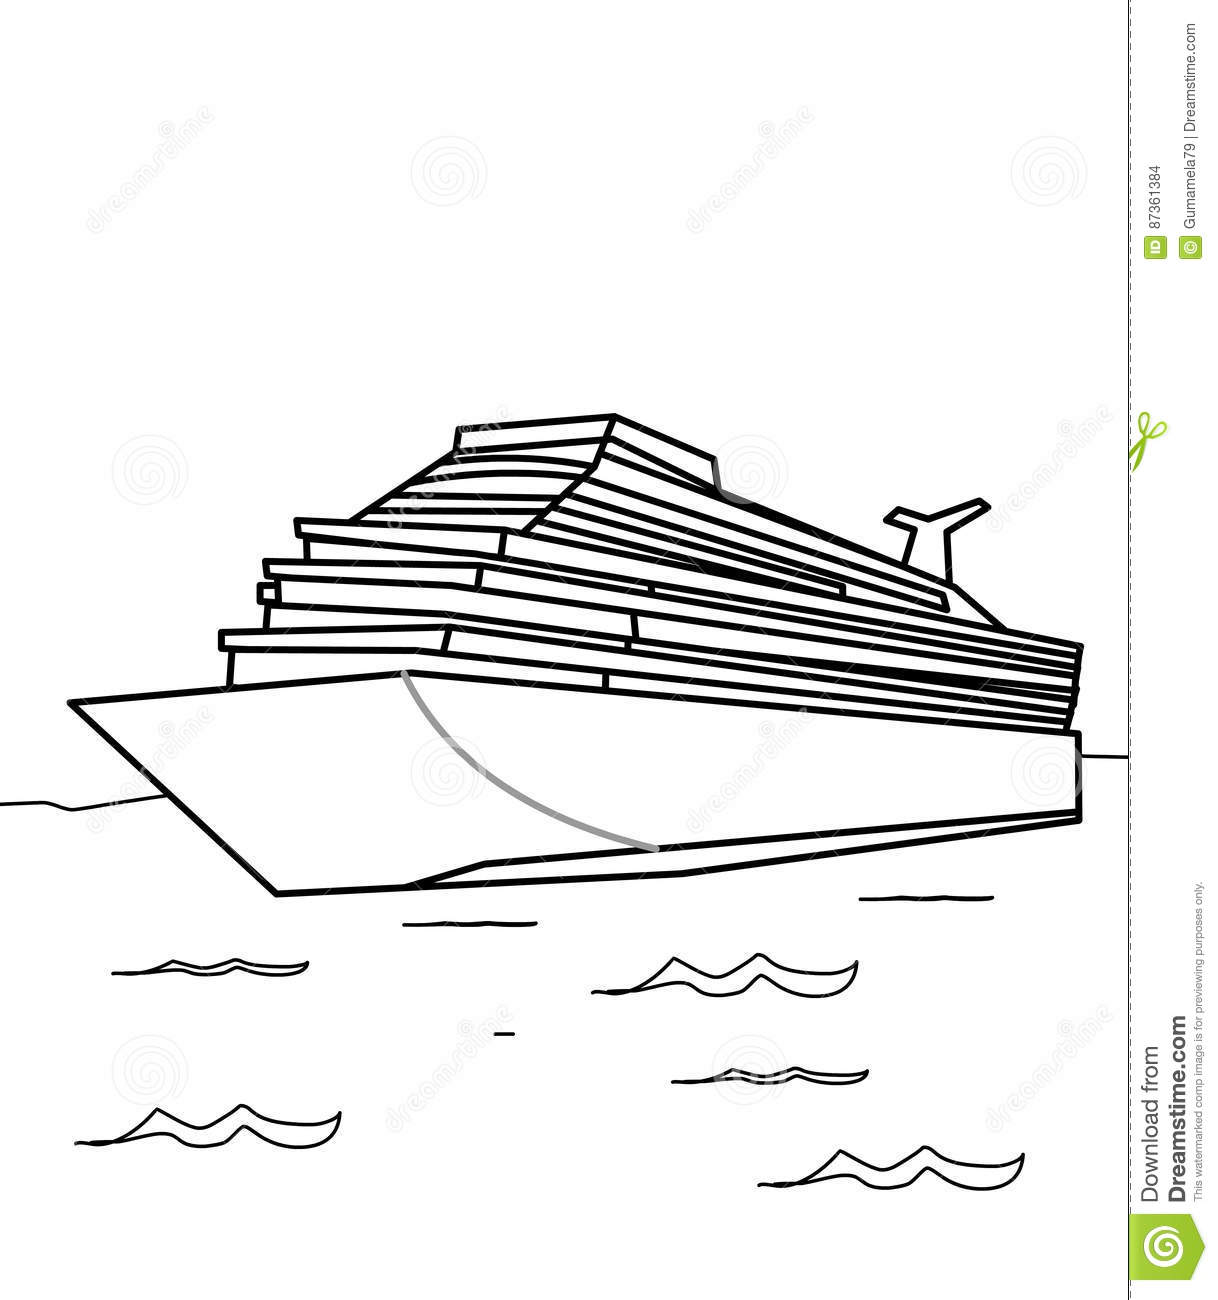 Cruise ship coloring page stock illustration illustration for Cruise ship coloring page